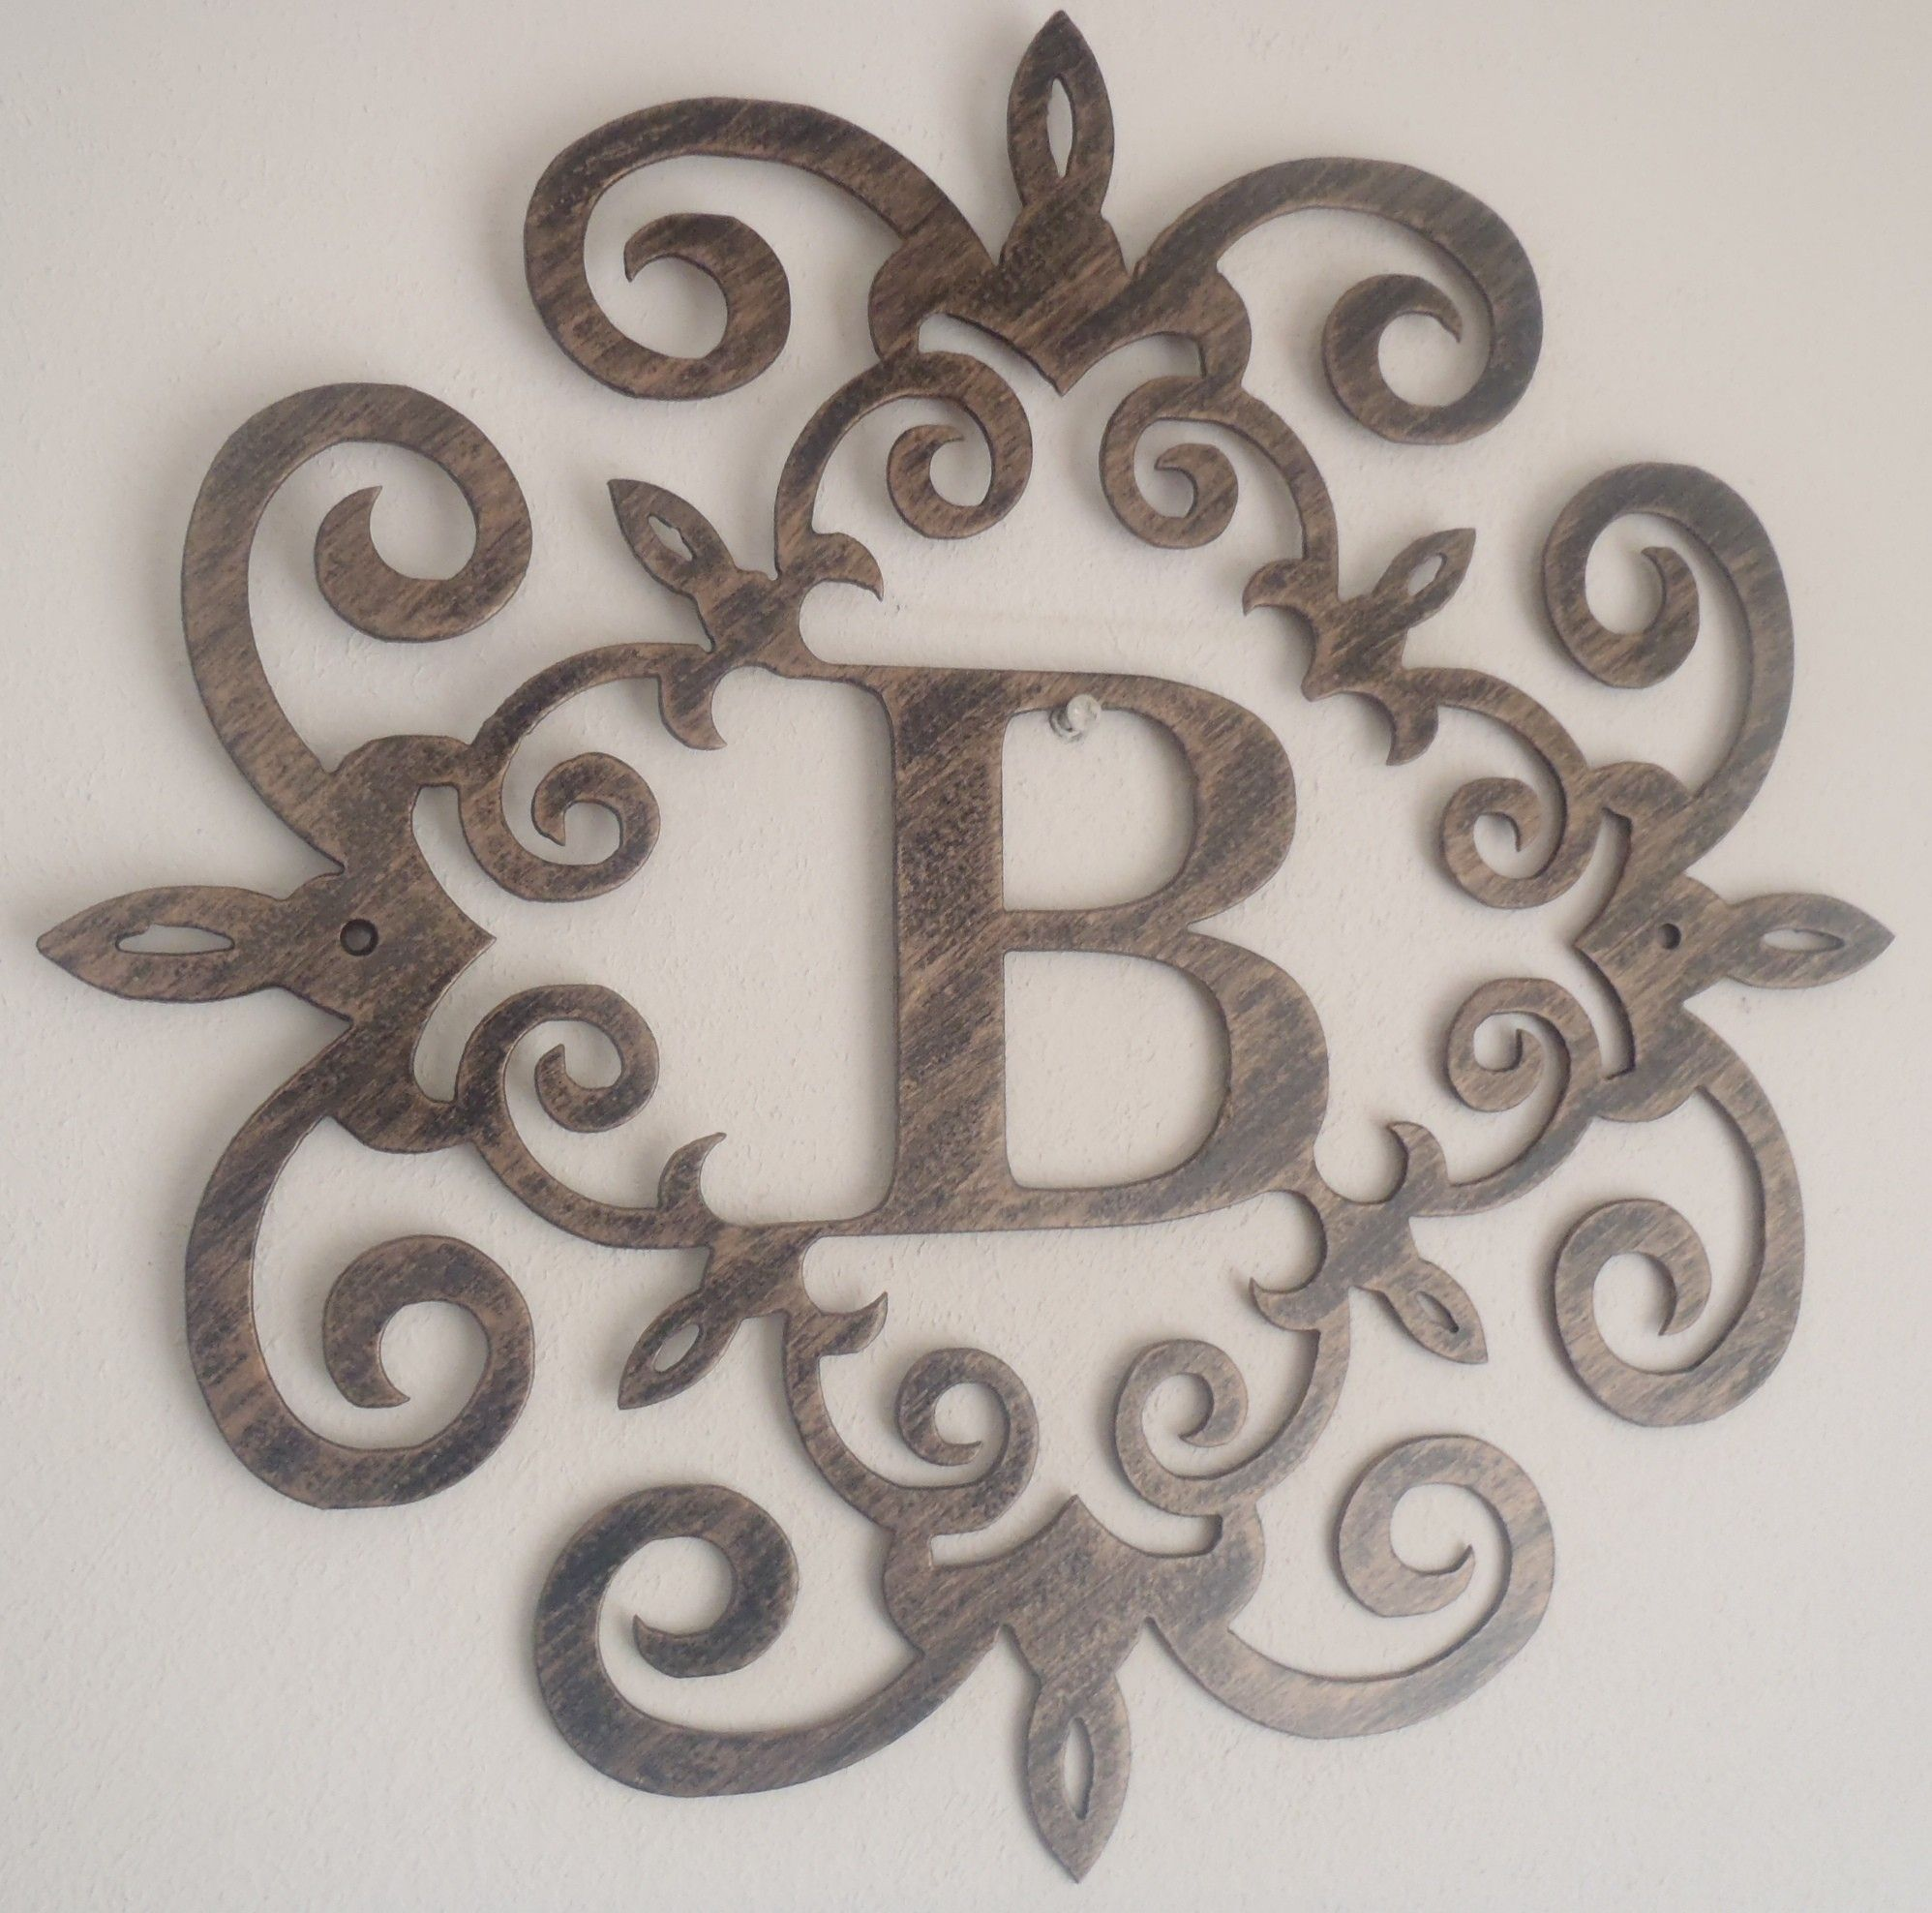 Wall Decor Metal Numbers : Family initial monogram inside a metal scroll with b